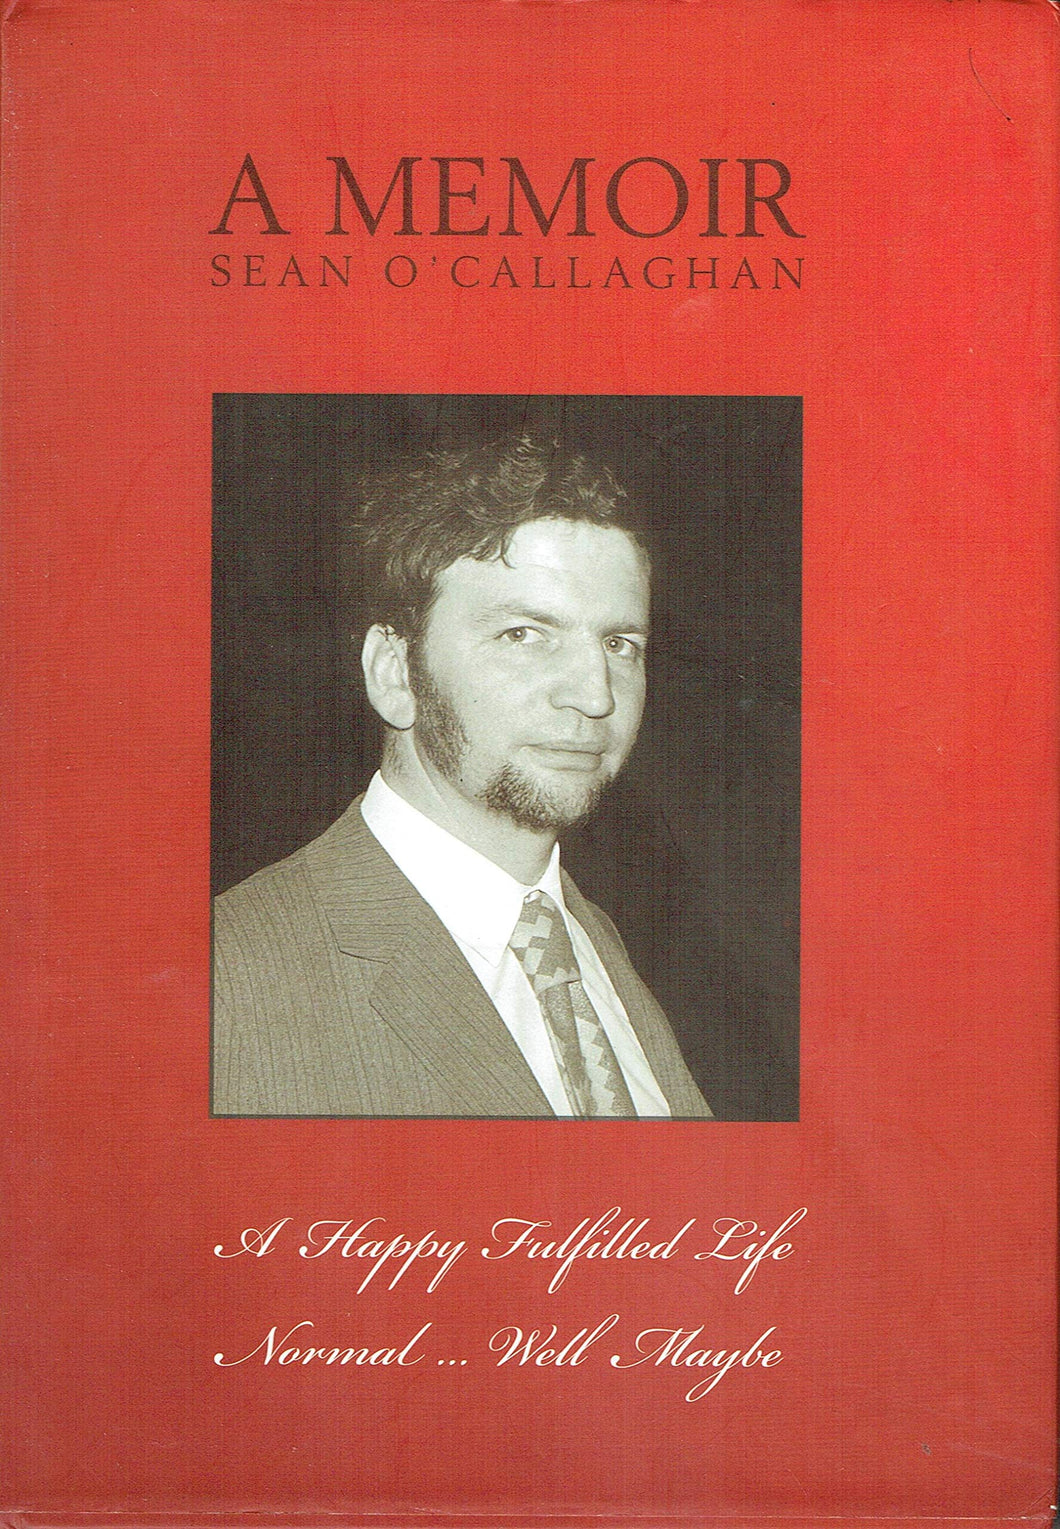 A Memoir: Sean O'Callaghan: A Happy Fulfilled Life - Normal... Well Maybe